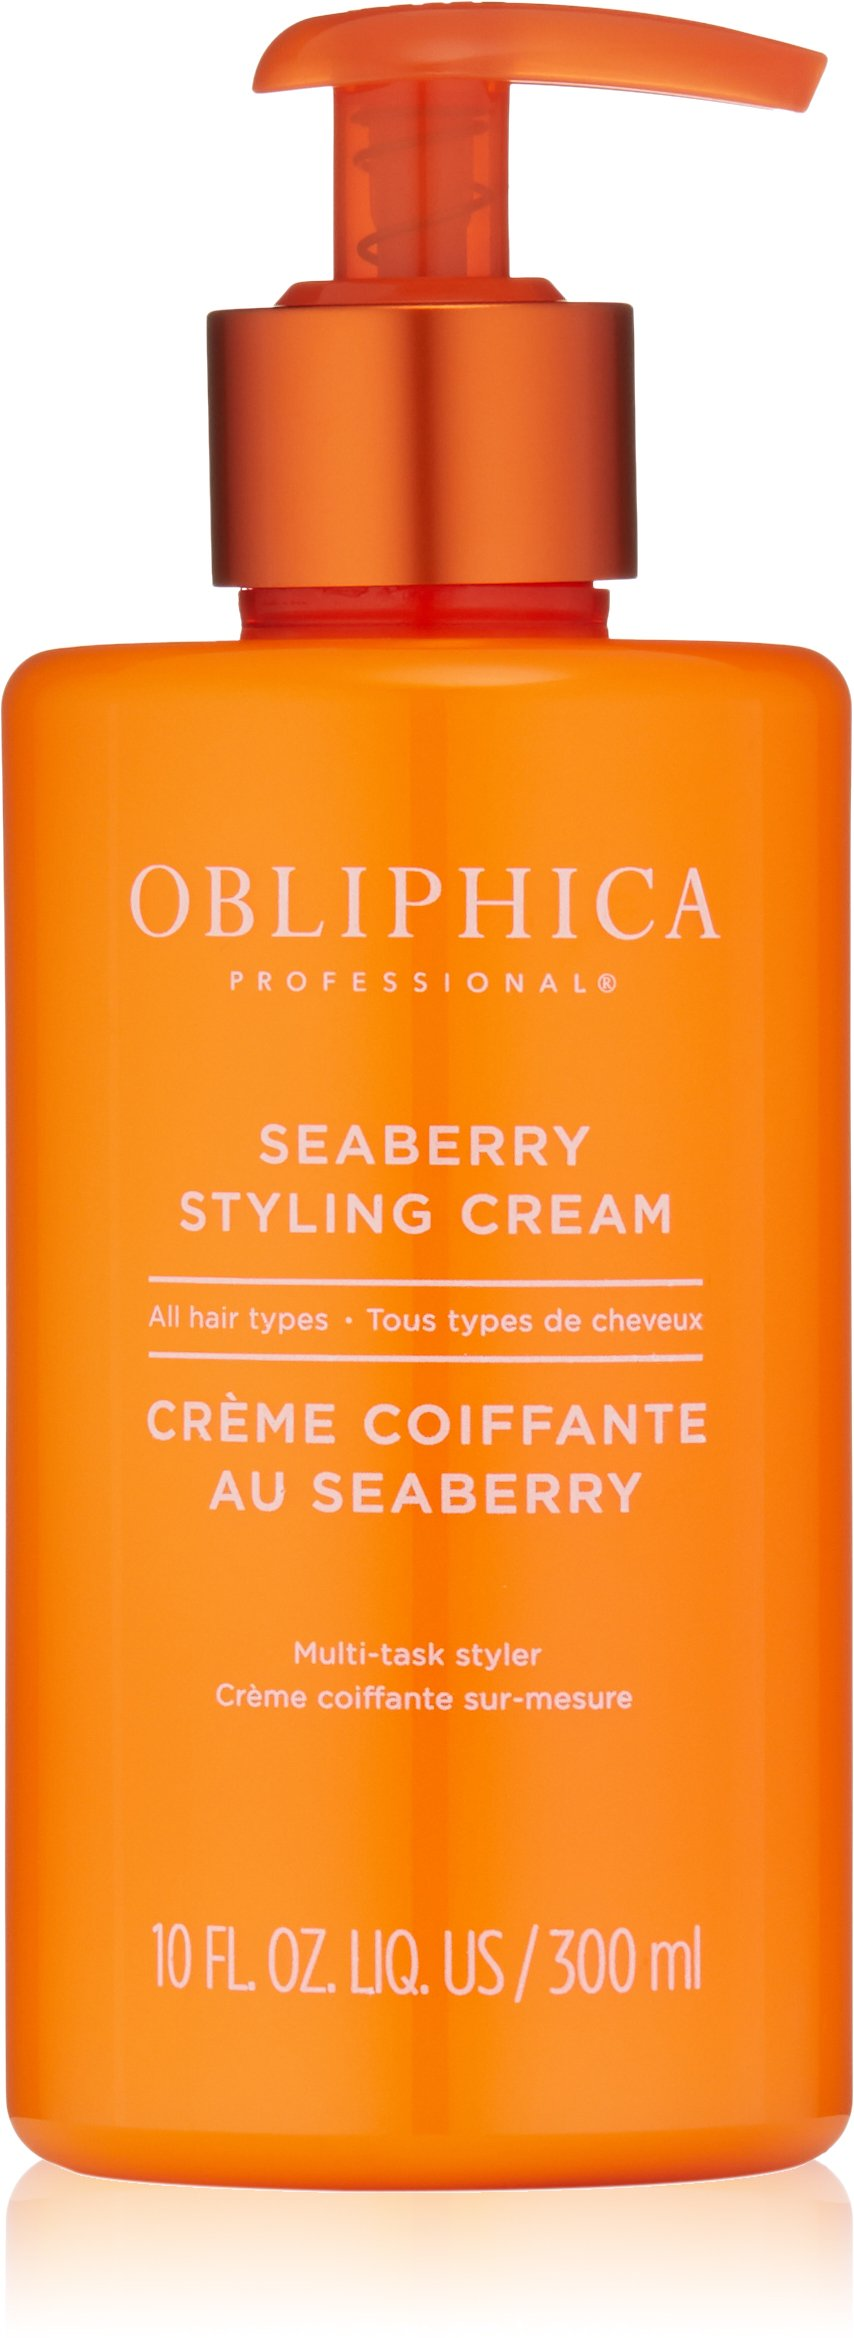 Obliphica Professional Seaberry Styling Cream, 10 Fl Oz by Obliphica Professional